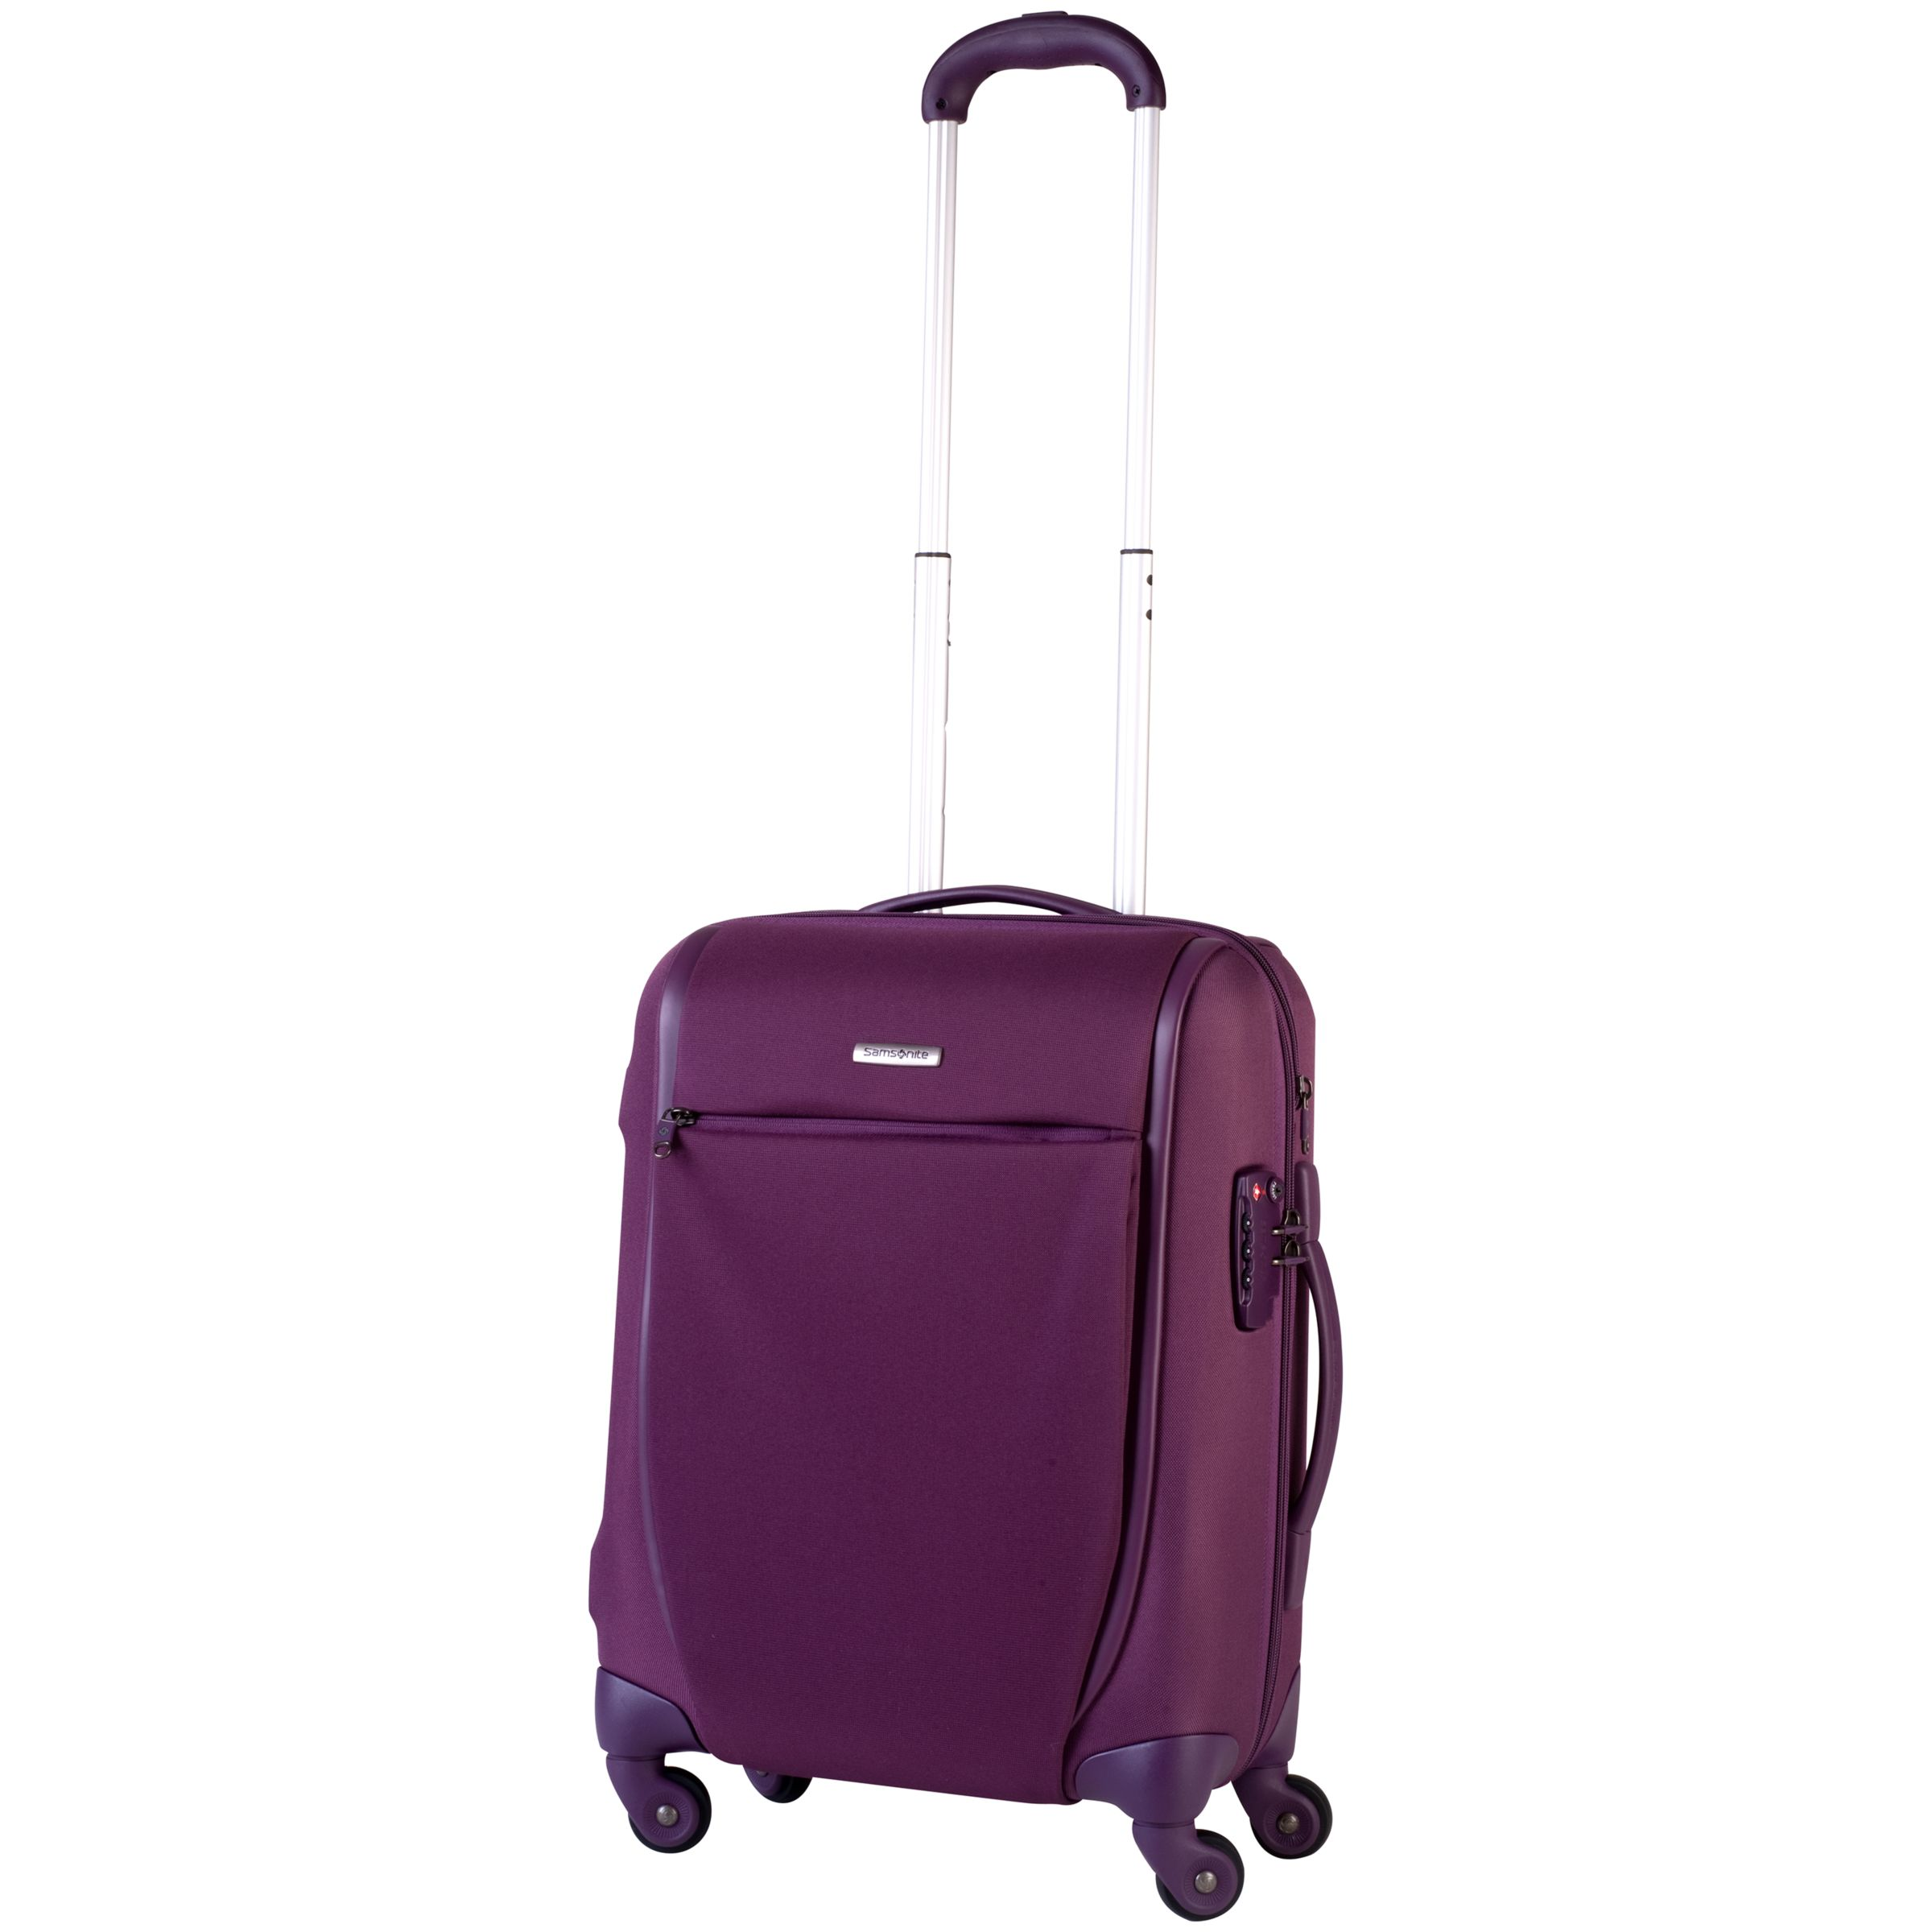 Samsonite Sahora Regeneration Spinner Suitcase, Plum, Small